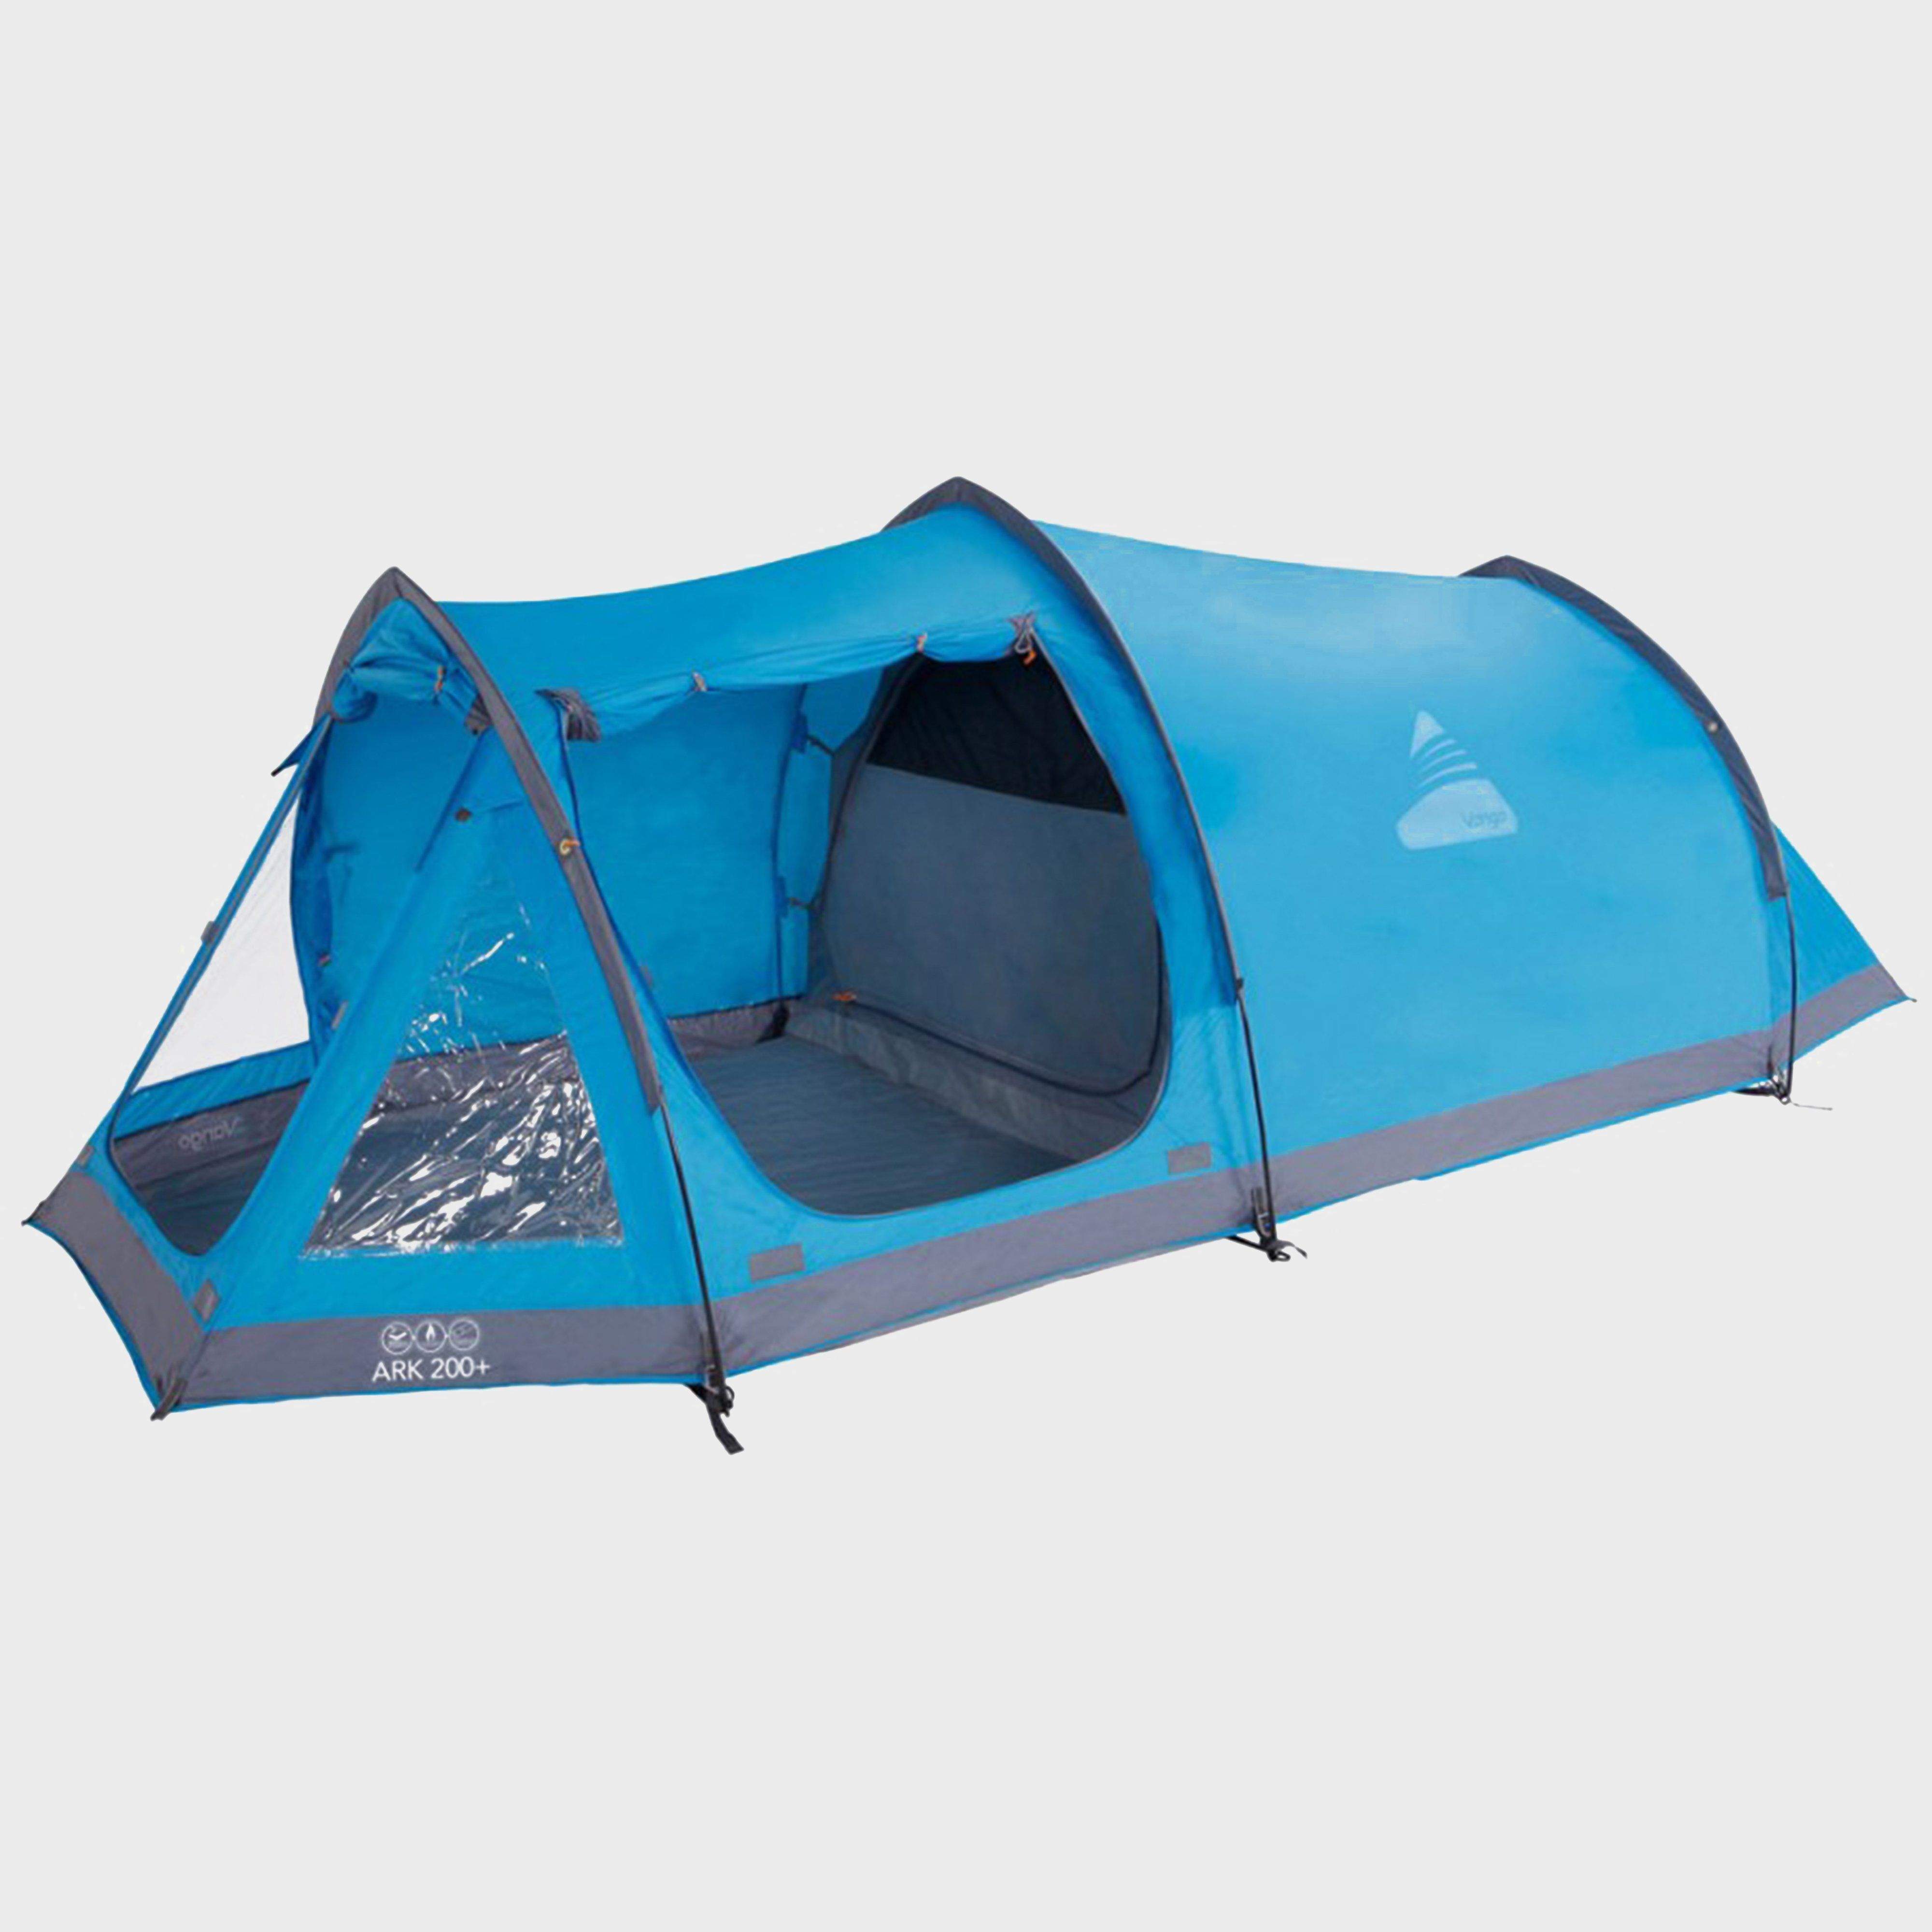 VANGO Ark 200 Plus 2 Person Tent